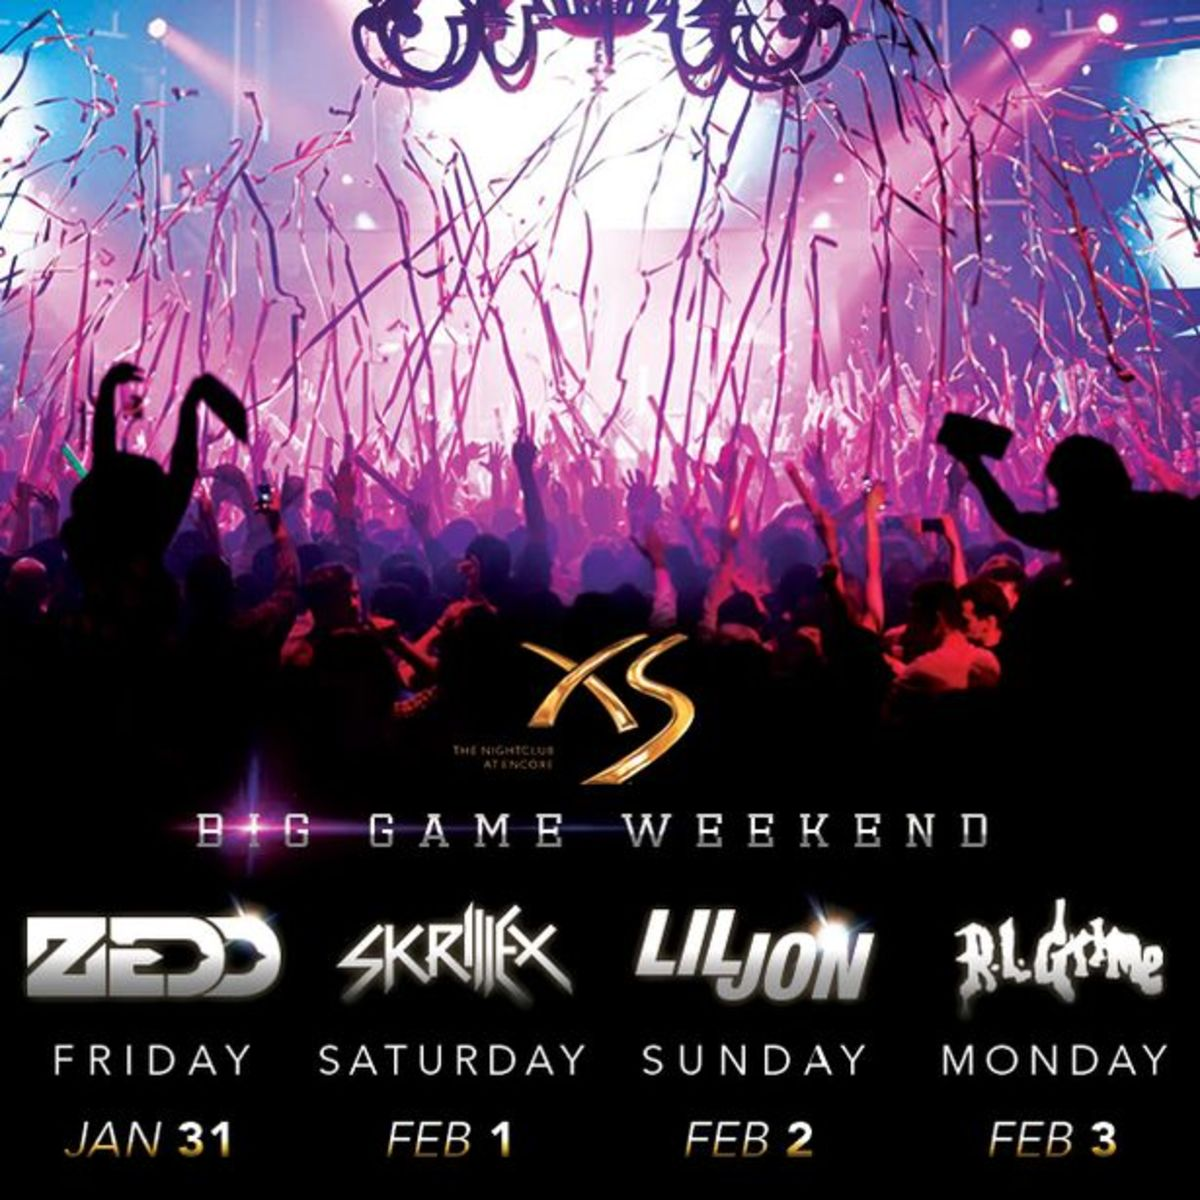 Win A Four Day Pass To XS Las Vegas Over 'Big Game' Weekend- Zedd, Skrillex, Lil Jon & RL Grime Performing